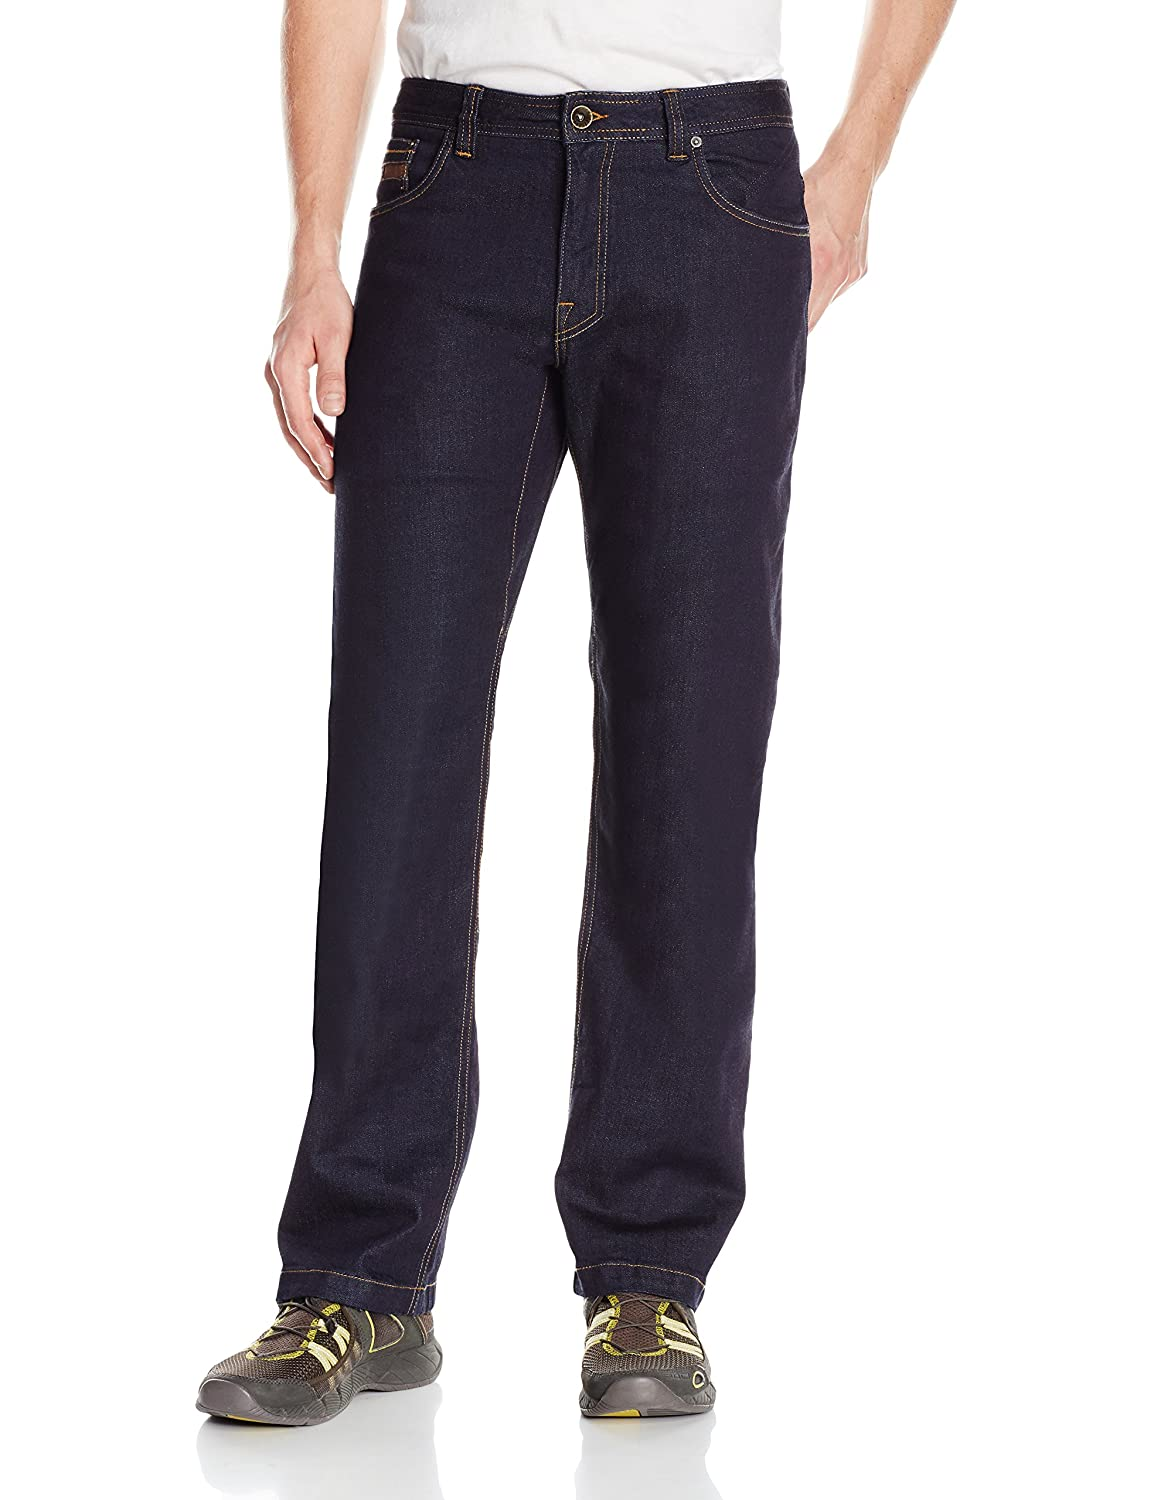 PrAna Men's M41173202 Axiom Jean 30